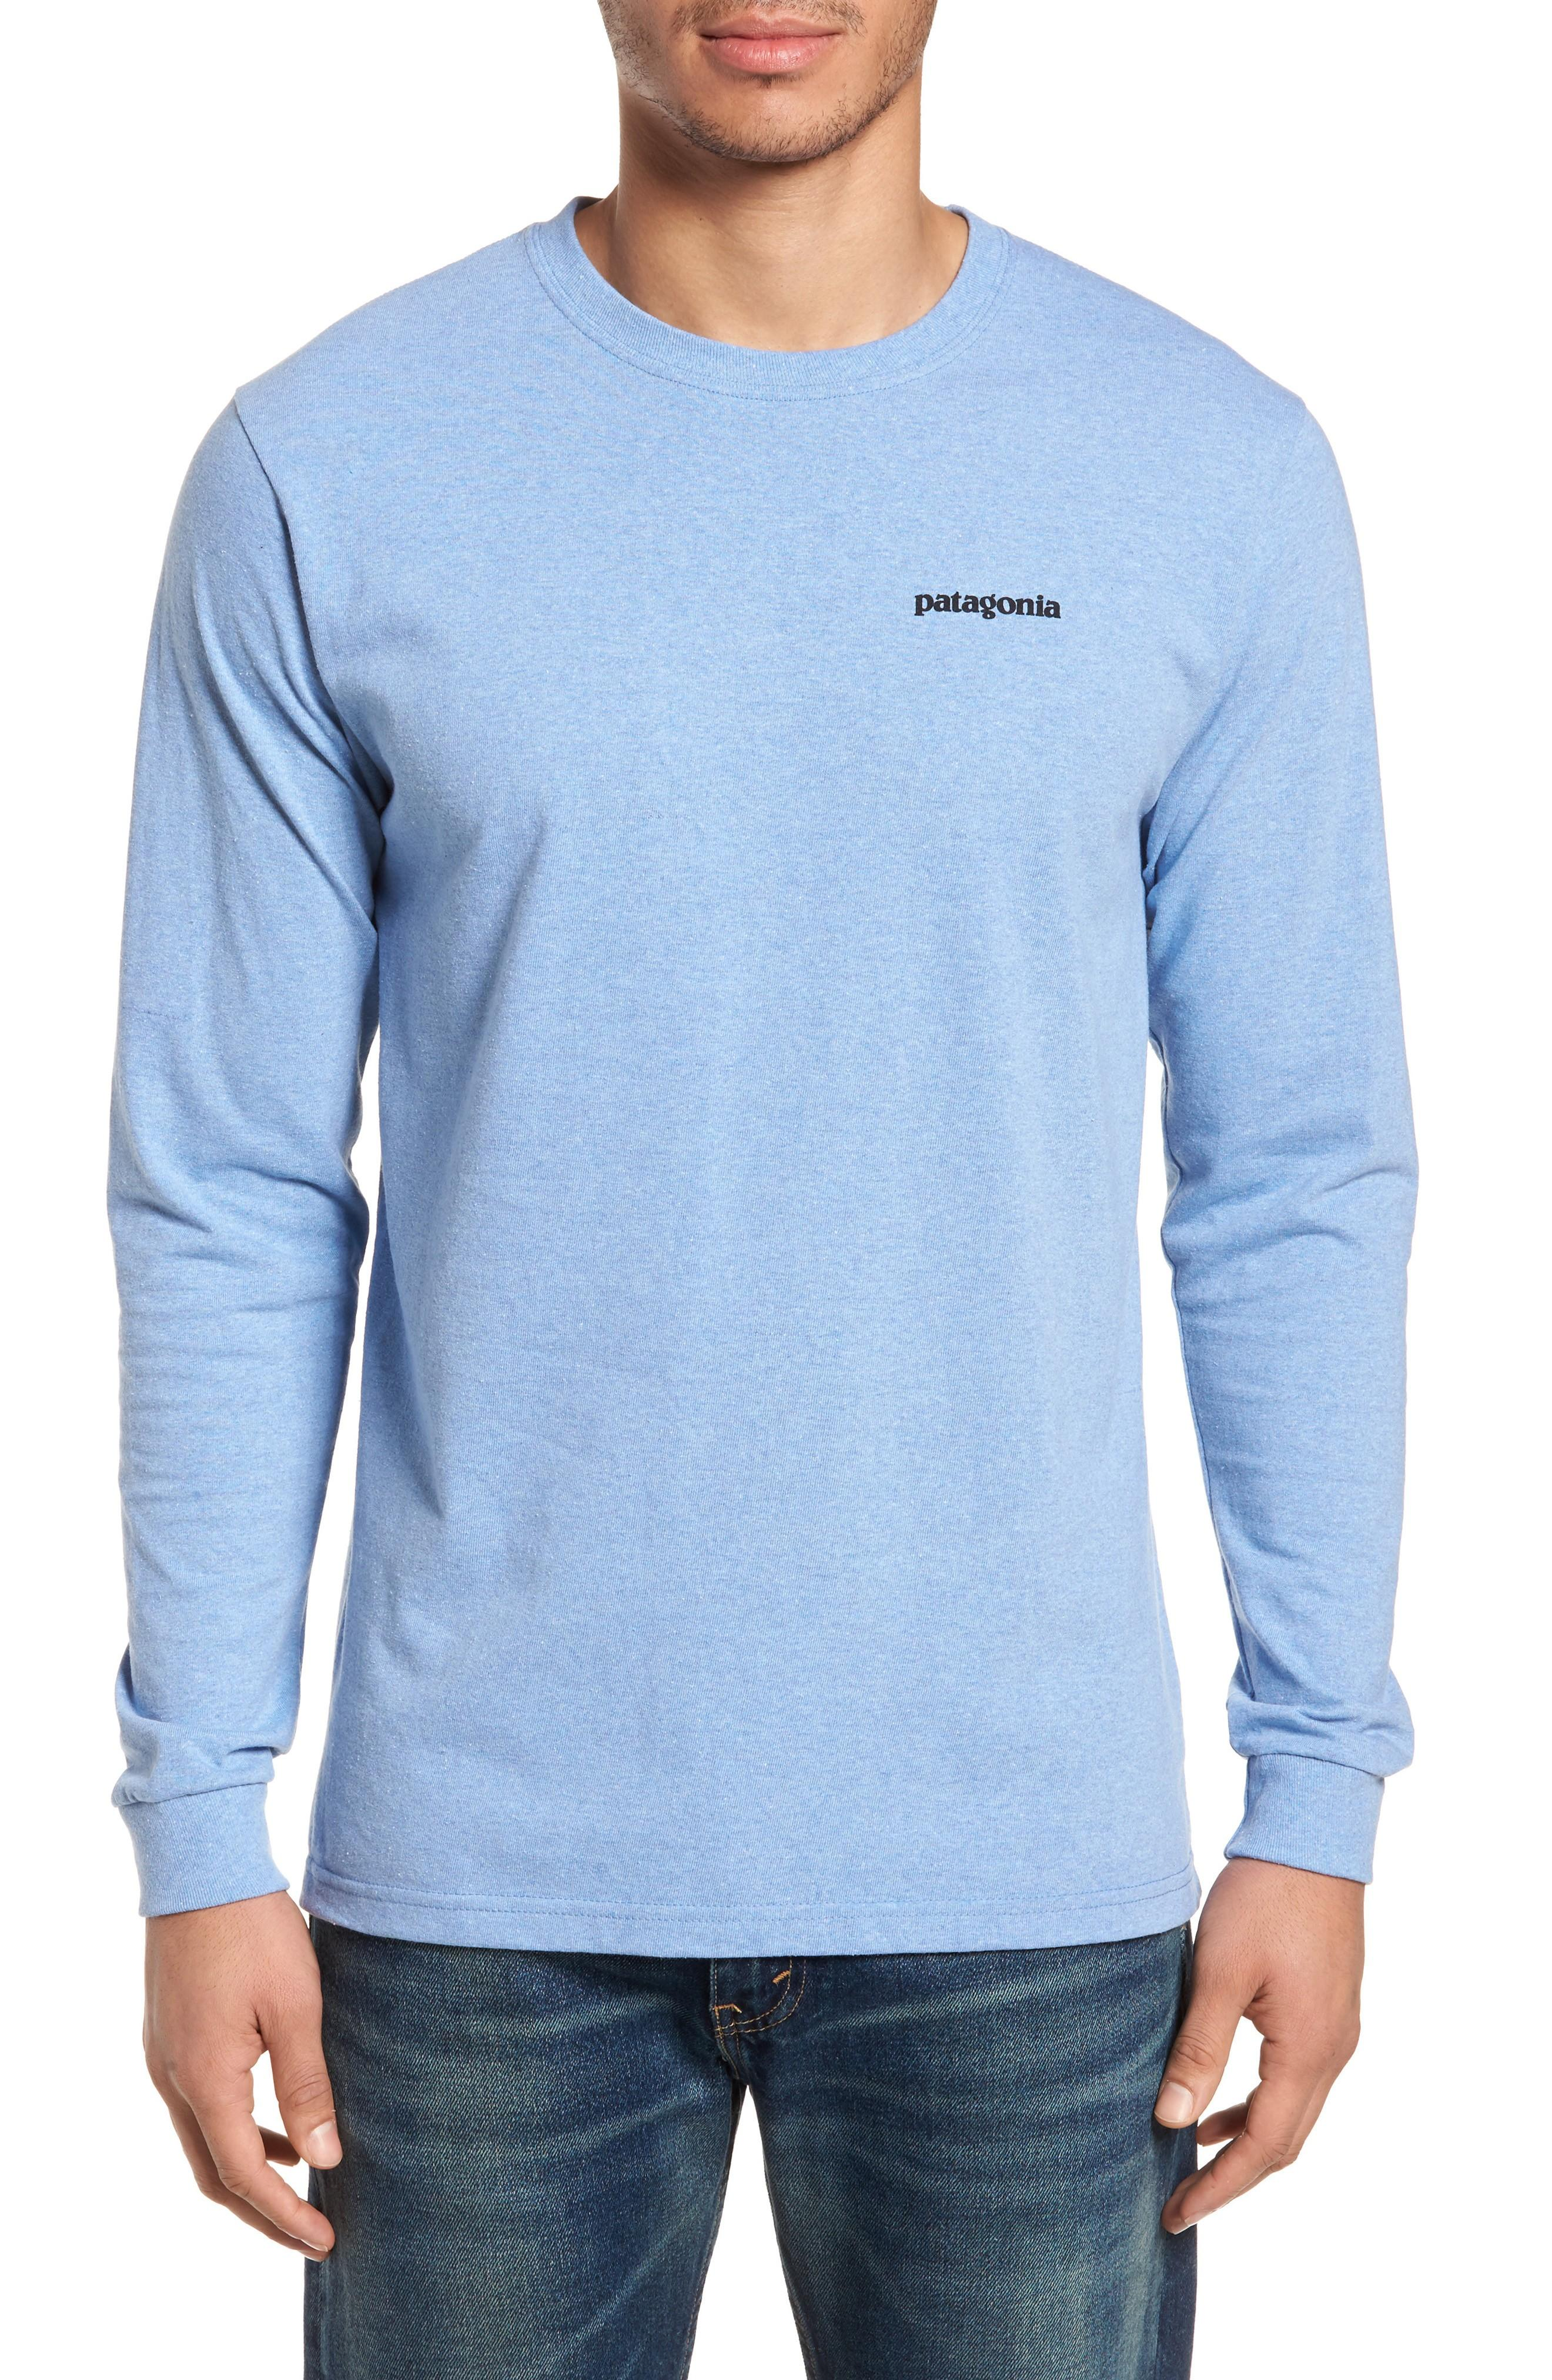 Patagonia Responsibili-tee Long Sleeve T-shirt In Railroad Blue